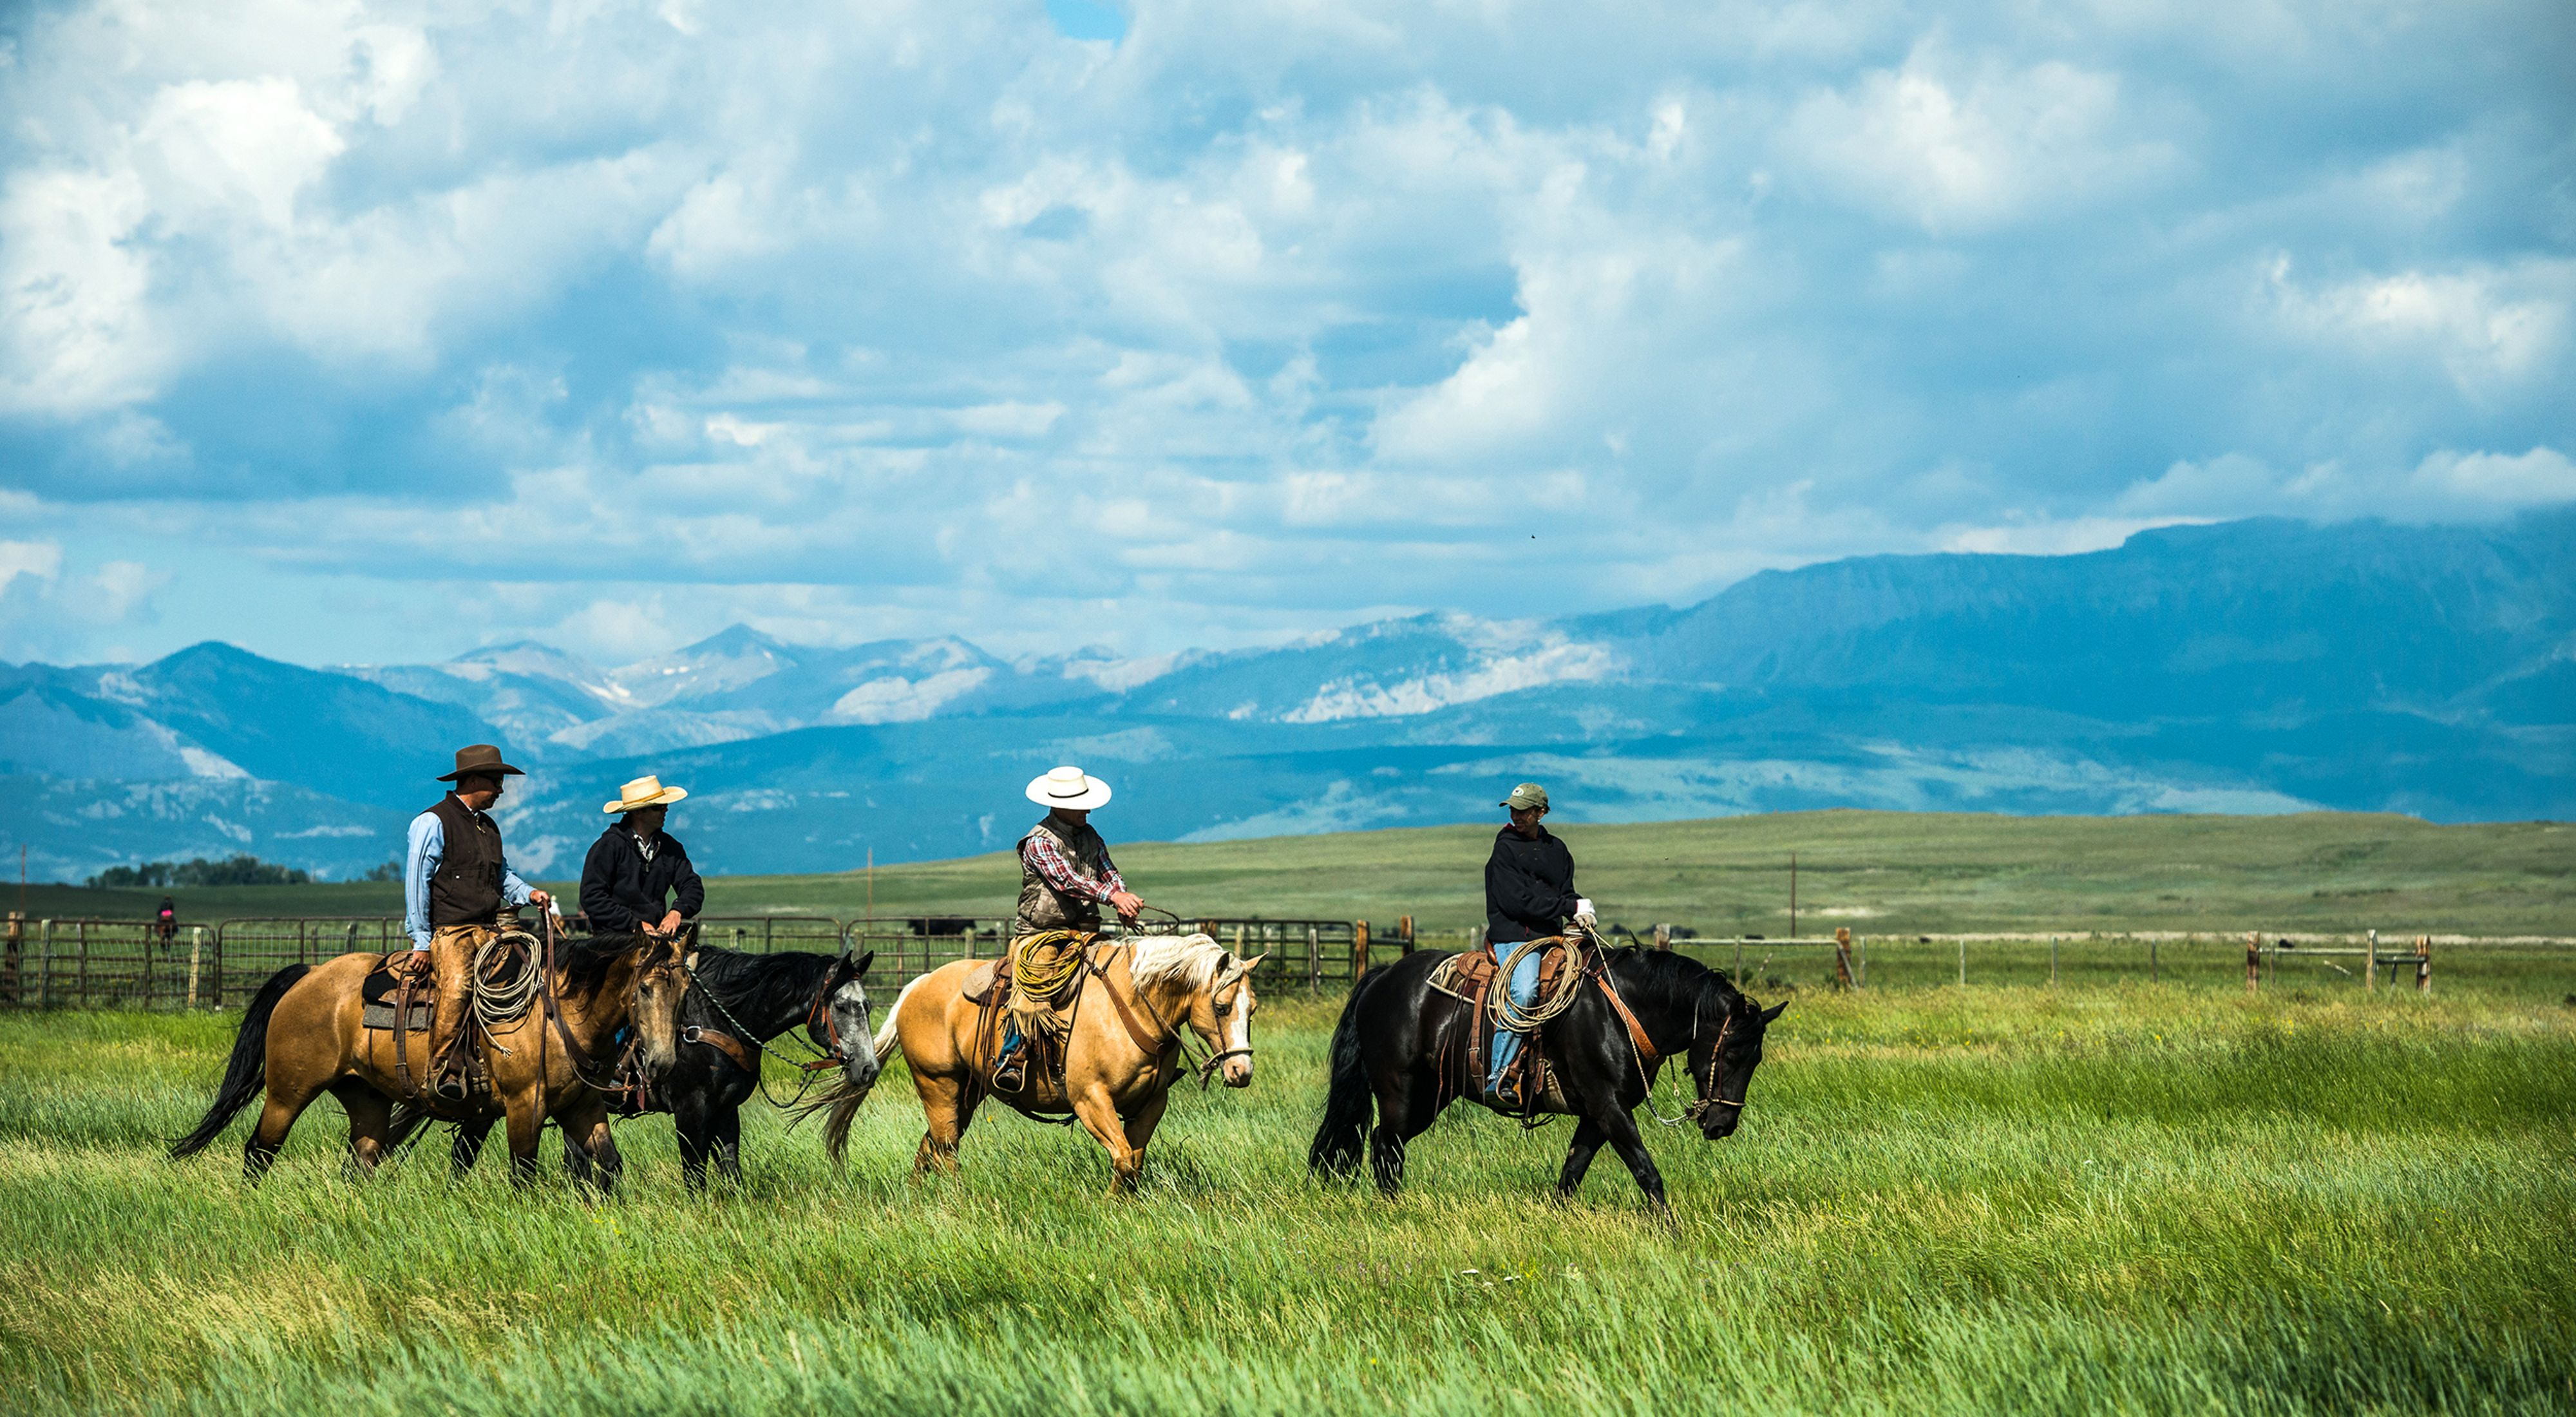 Cowboys riding on horses with a mountain landscape and blue skies behind them.